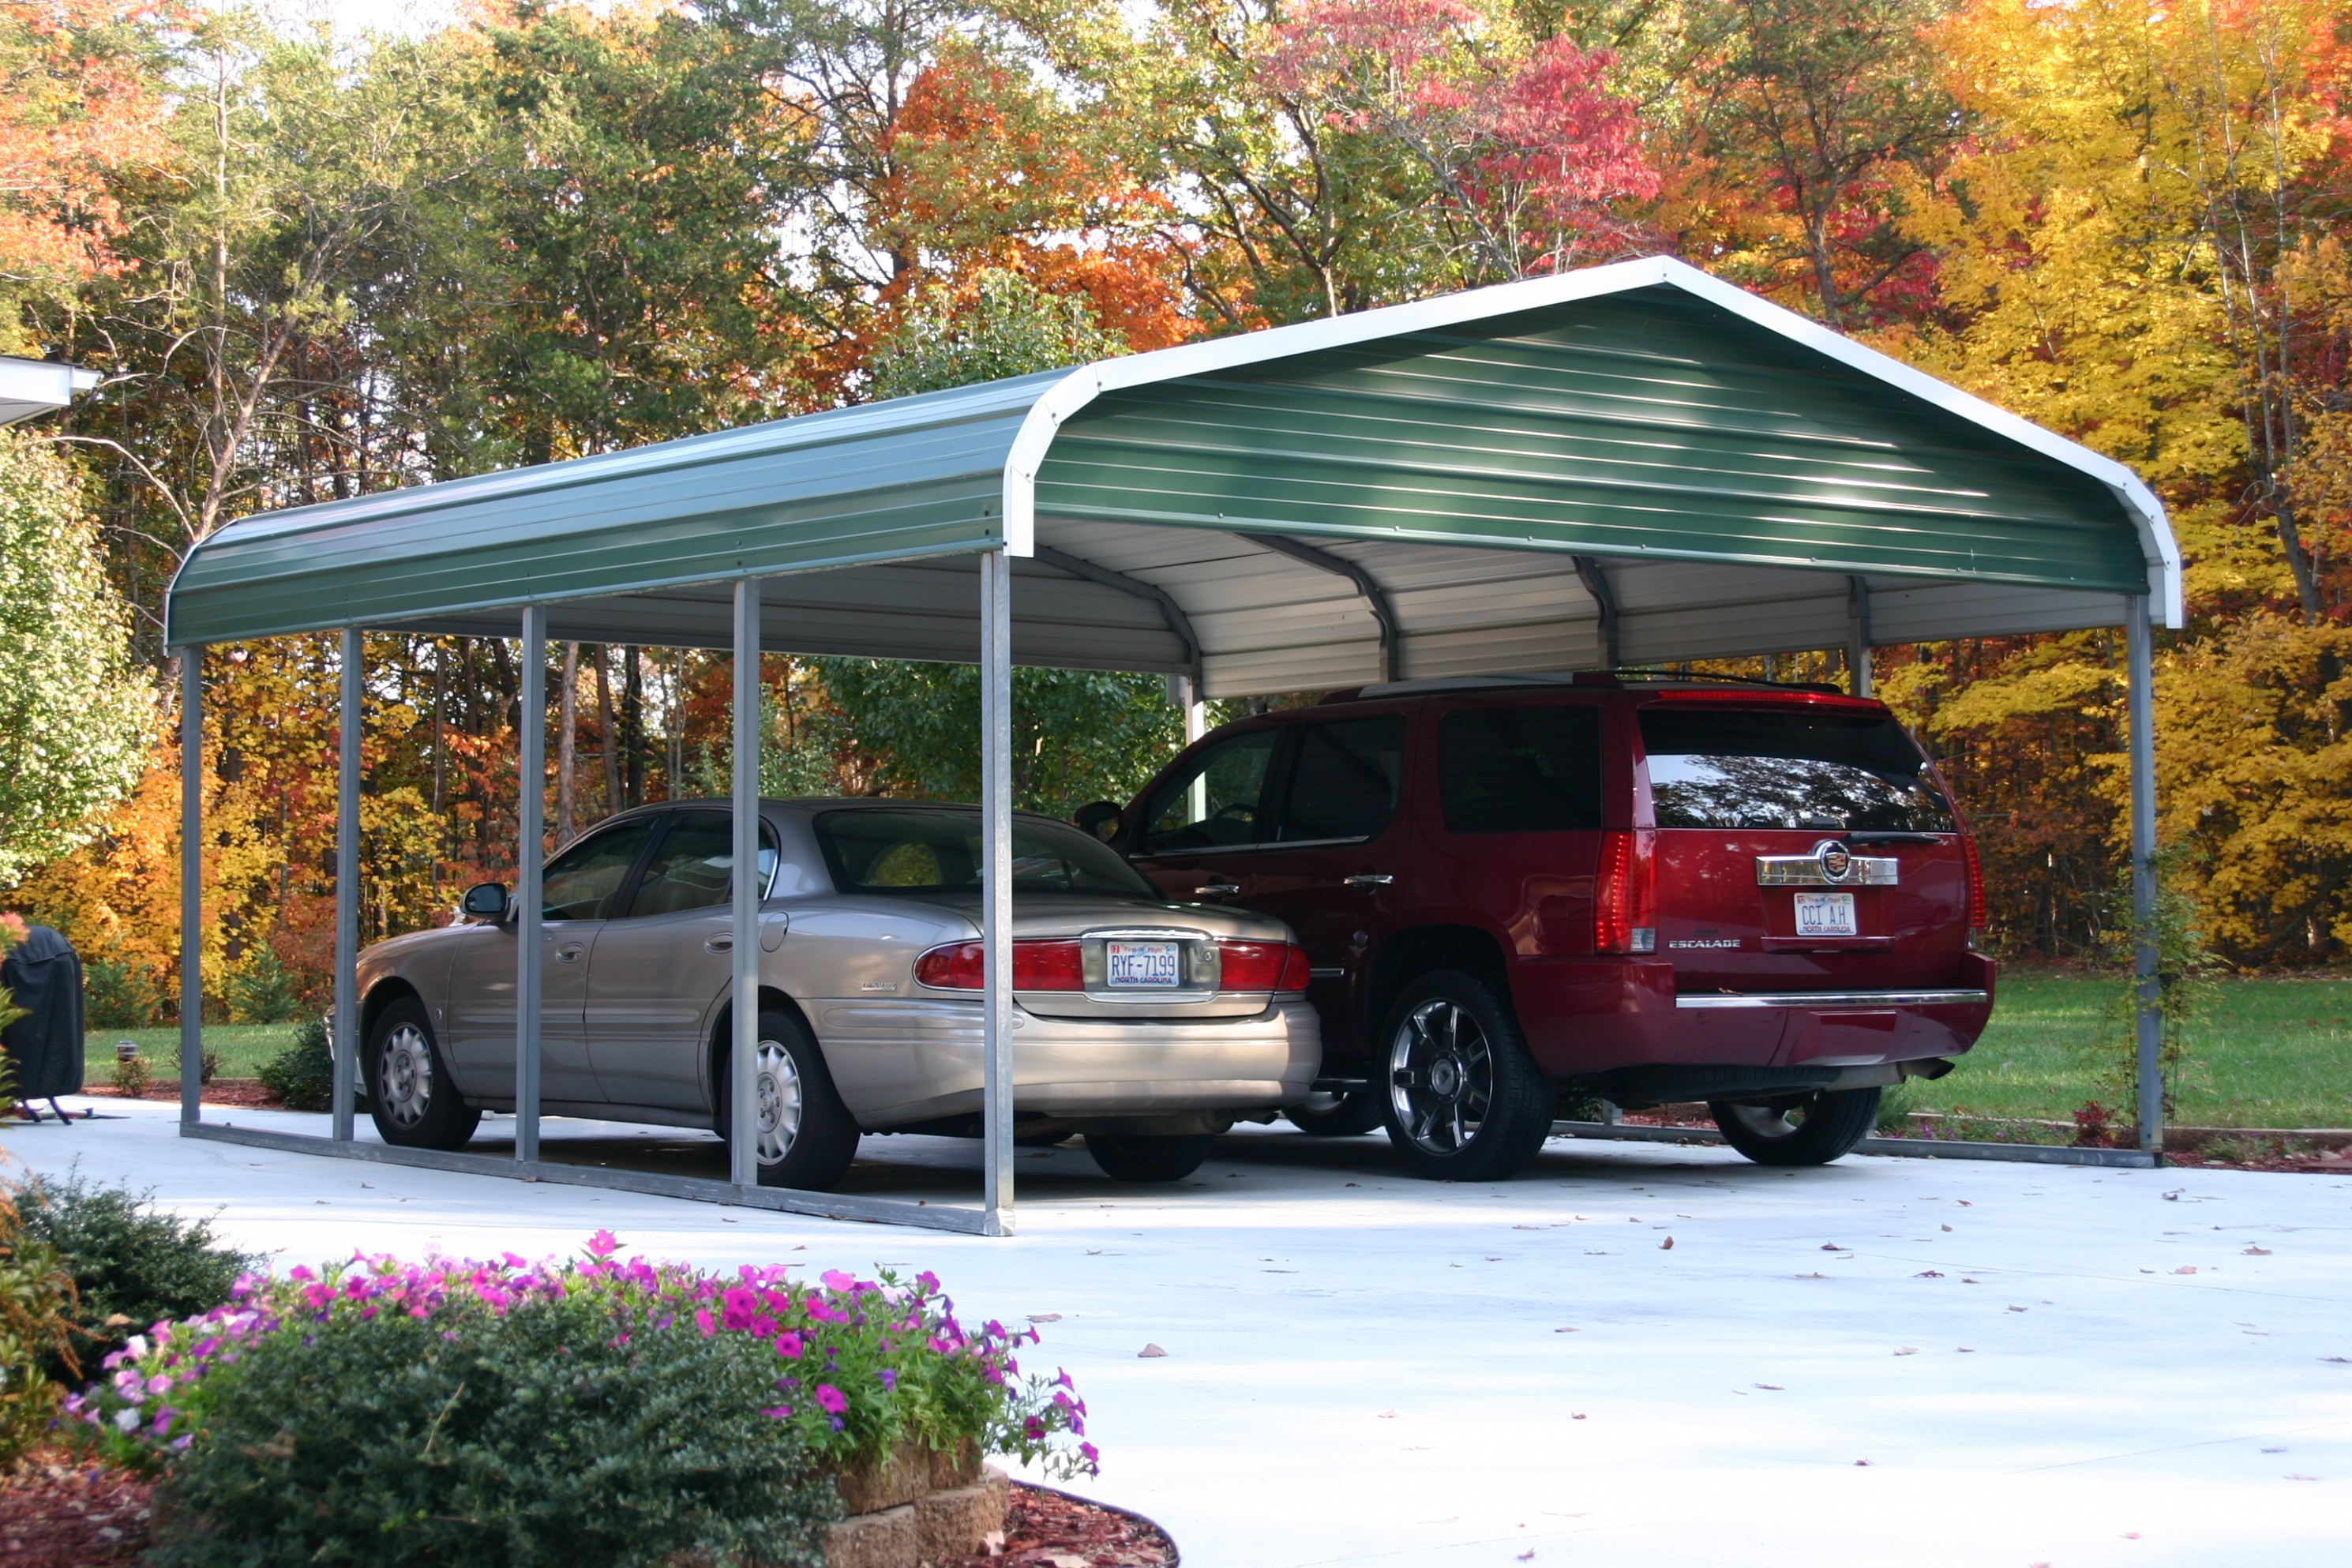 1517541168-carports-lowes-get-free-plans-to-build-sheds-bookcases-coffee-tables-and-more-10×10-steel-carport.jpg